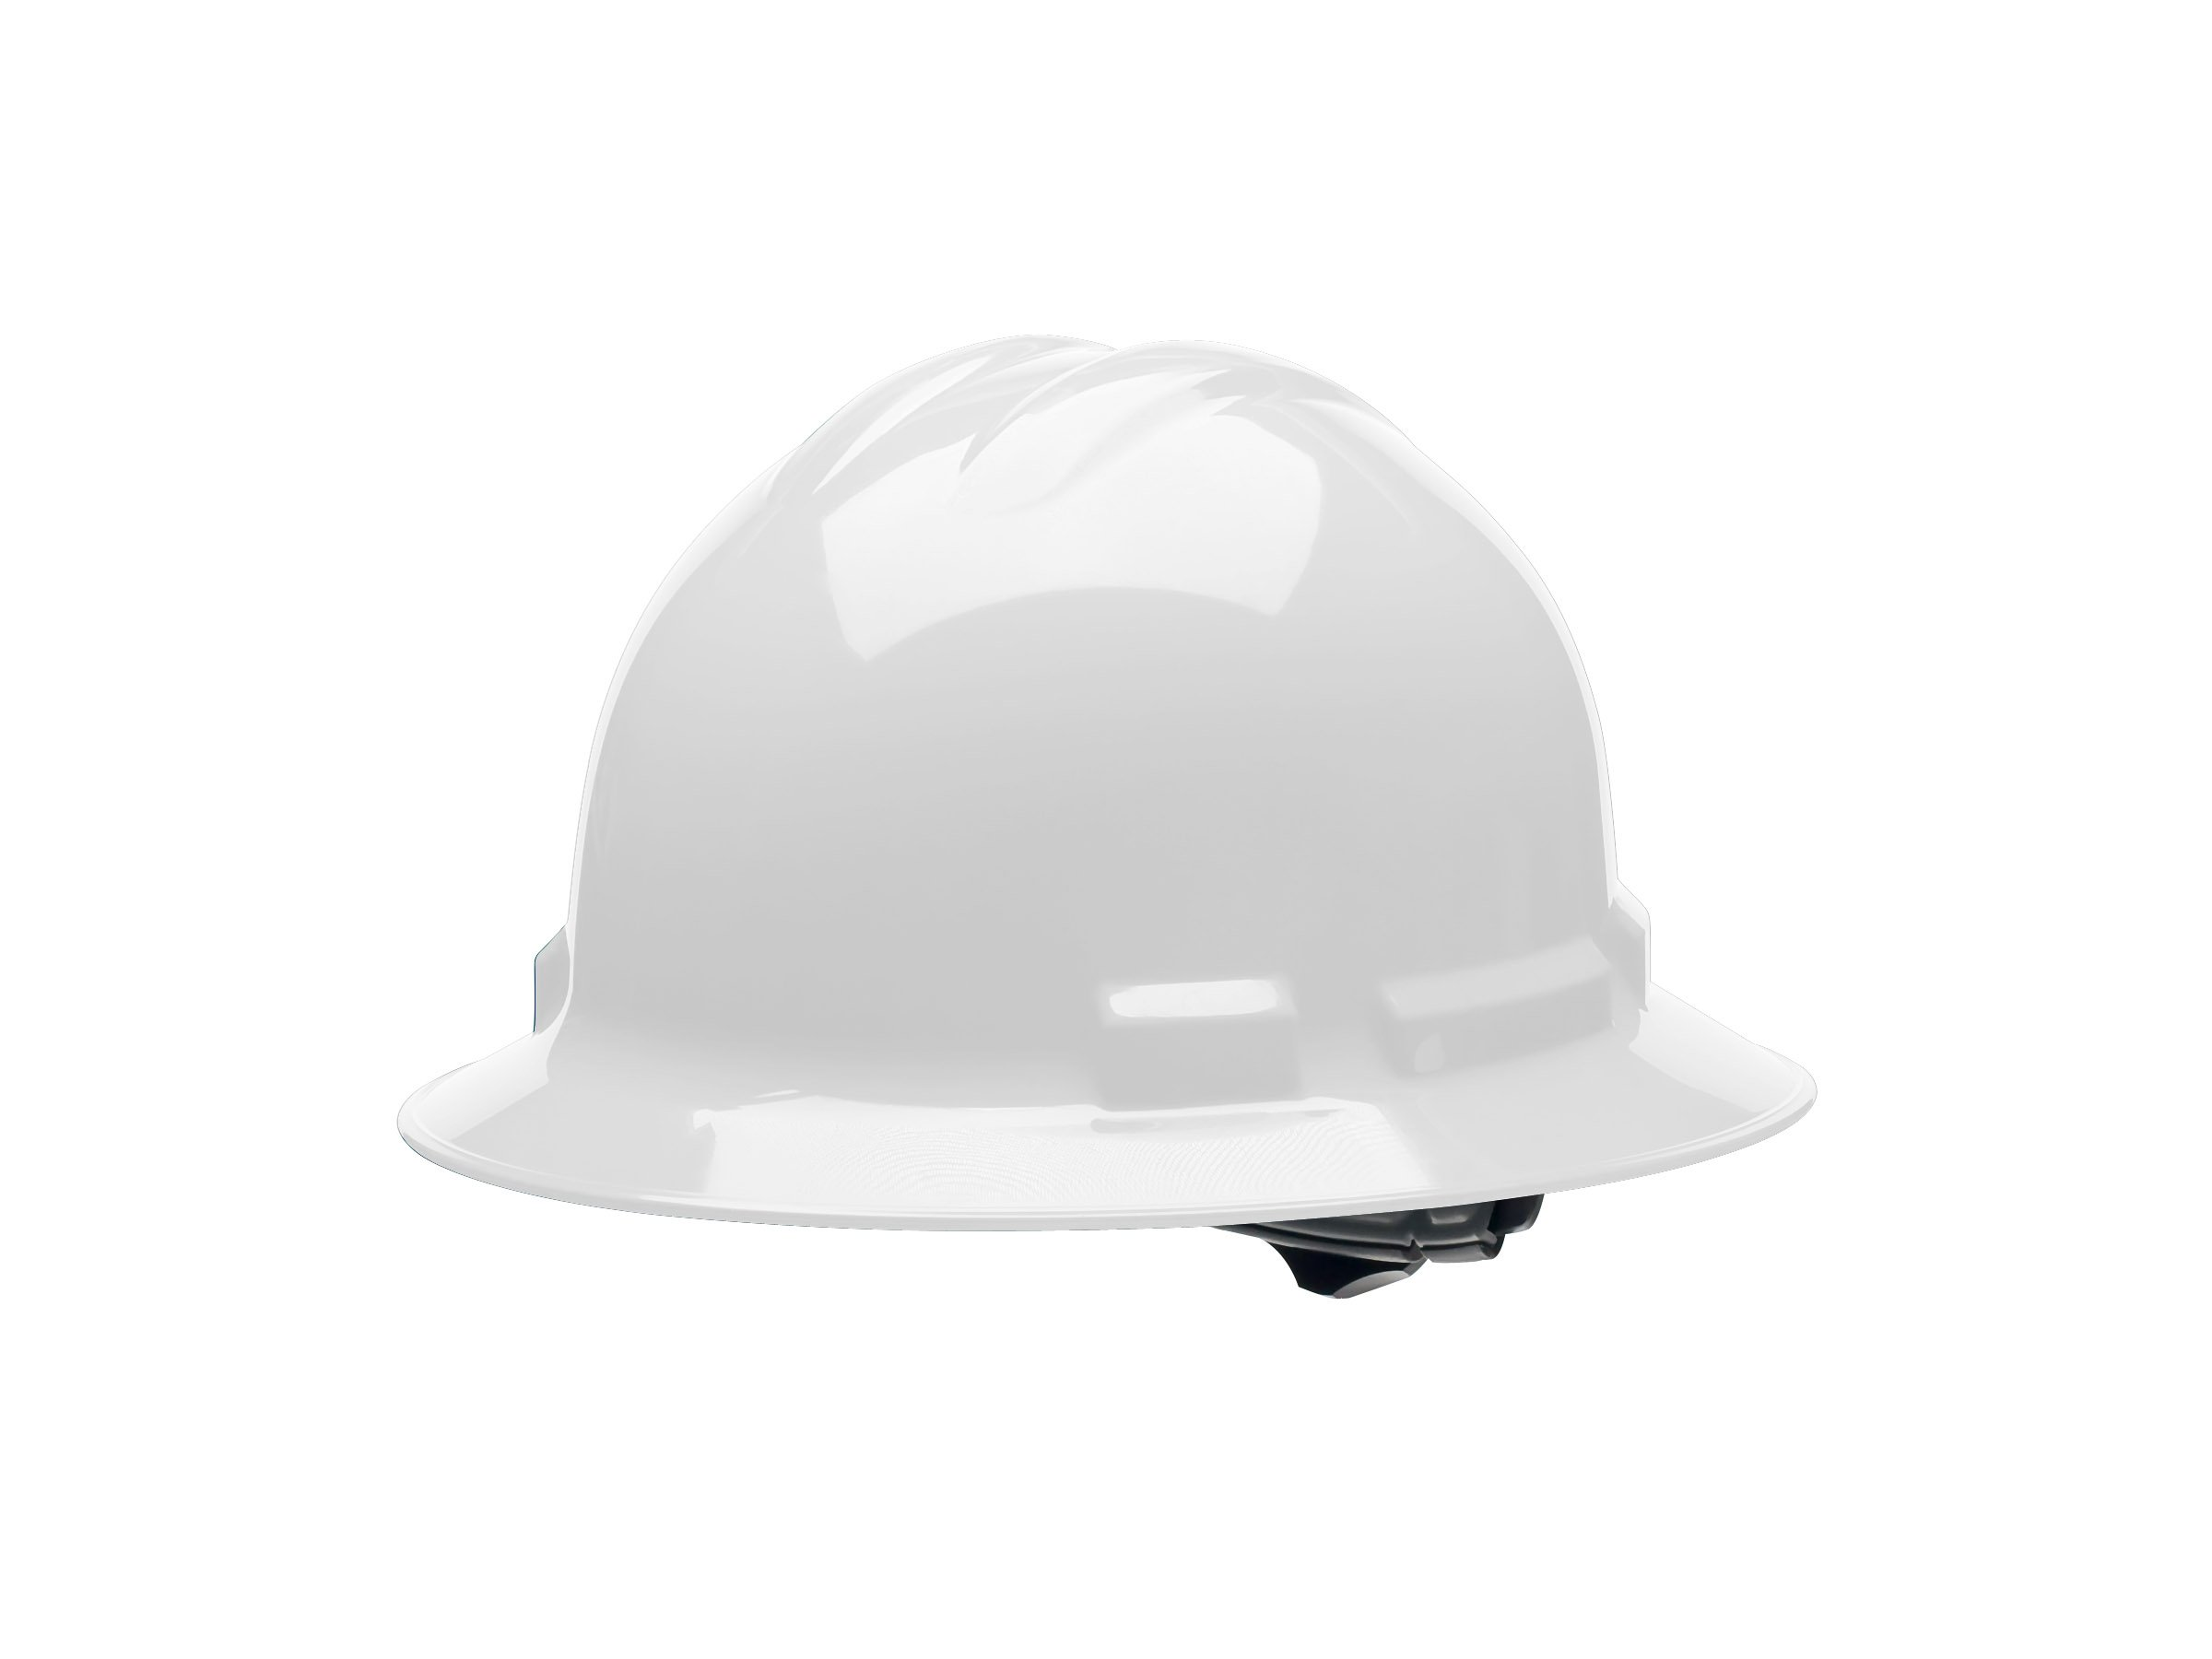 Cordova H34R1 Duo Safety Full Brim Helmet, Nylon Ratchet Suspension, 4-Point, White, Large